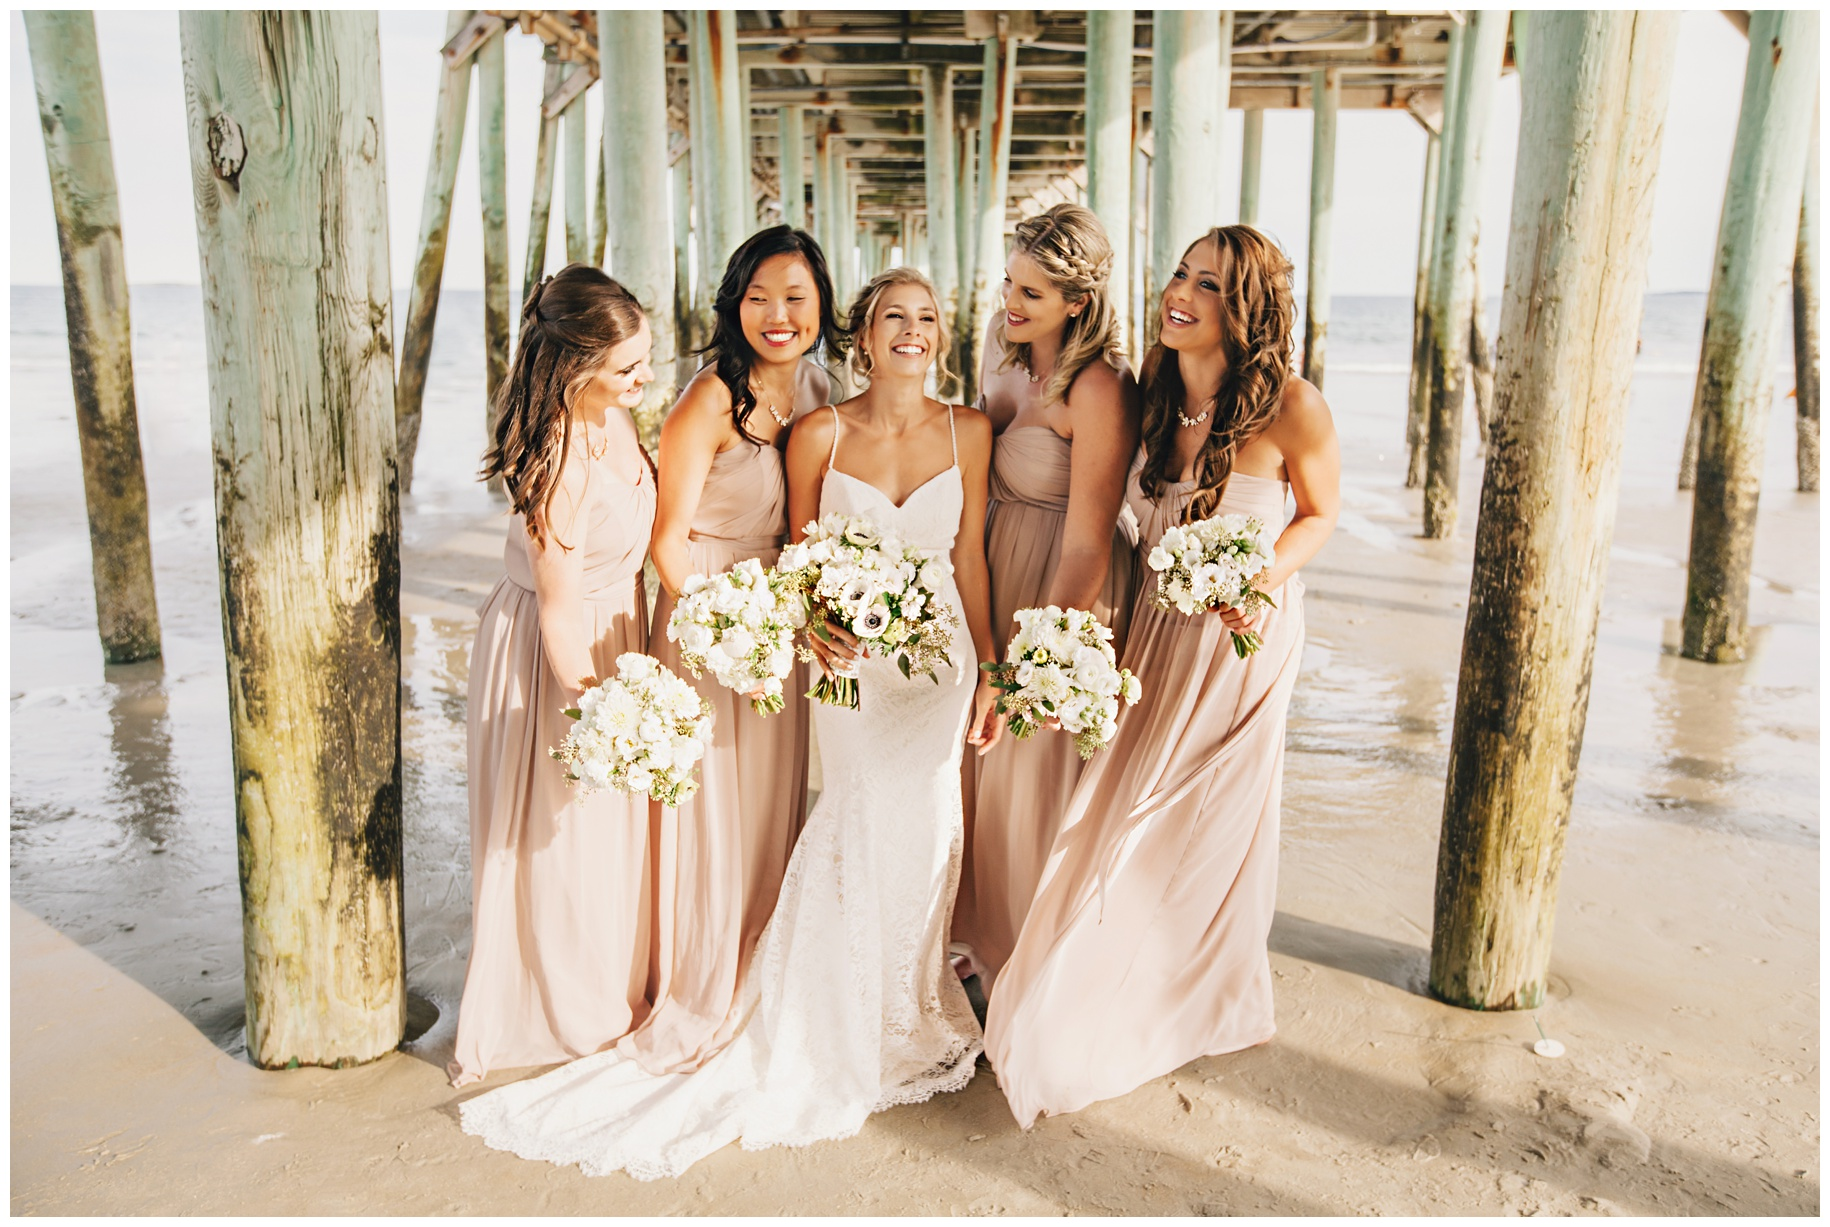 MaineWeddingPhotographer_OldOrchard_Beach_Coast_pier_tent-011